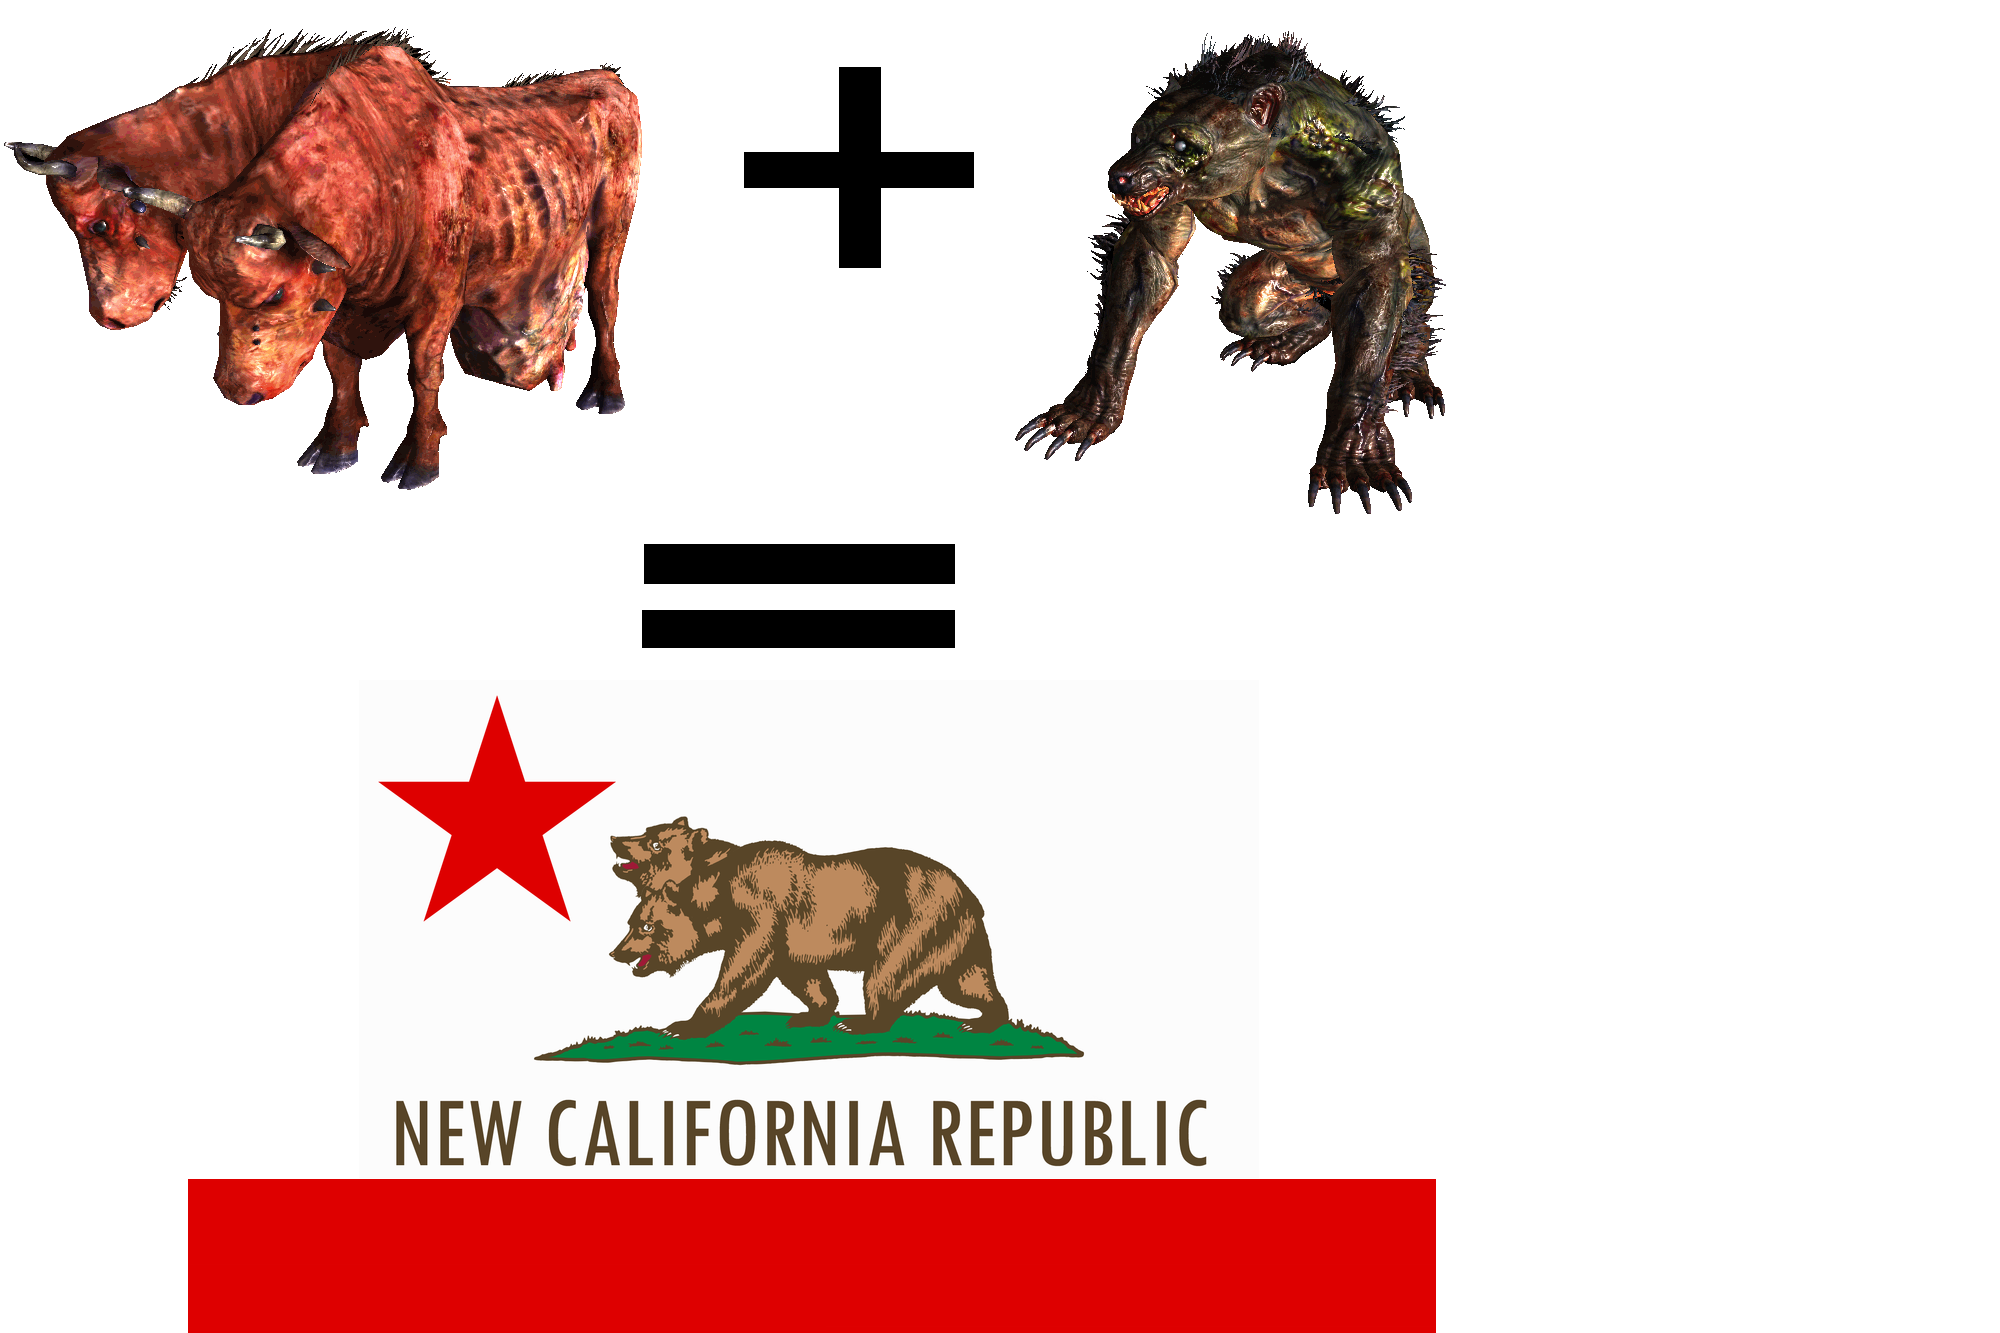 New California Republic Png - Now let's just hope NCR won't actually try and breed these things ...